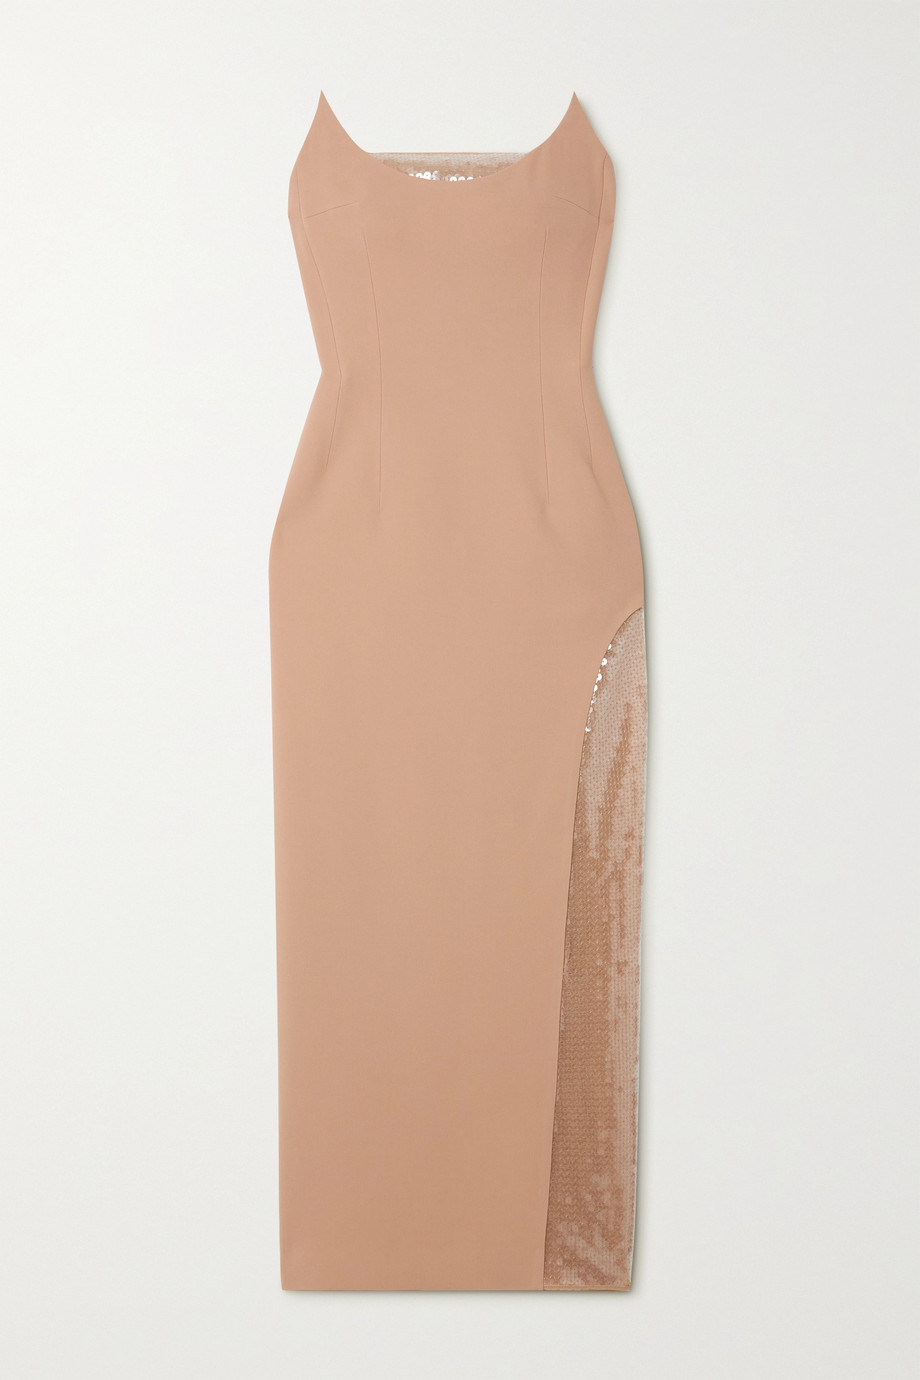 DAVID KOMA Strapless sequined tulle-trimmed cady gown